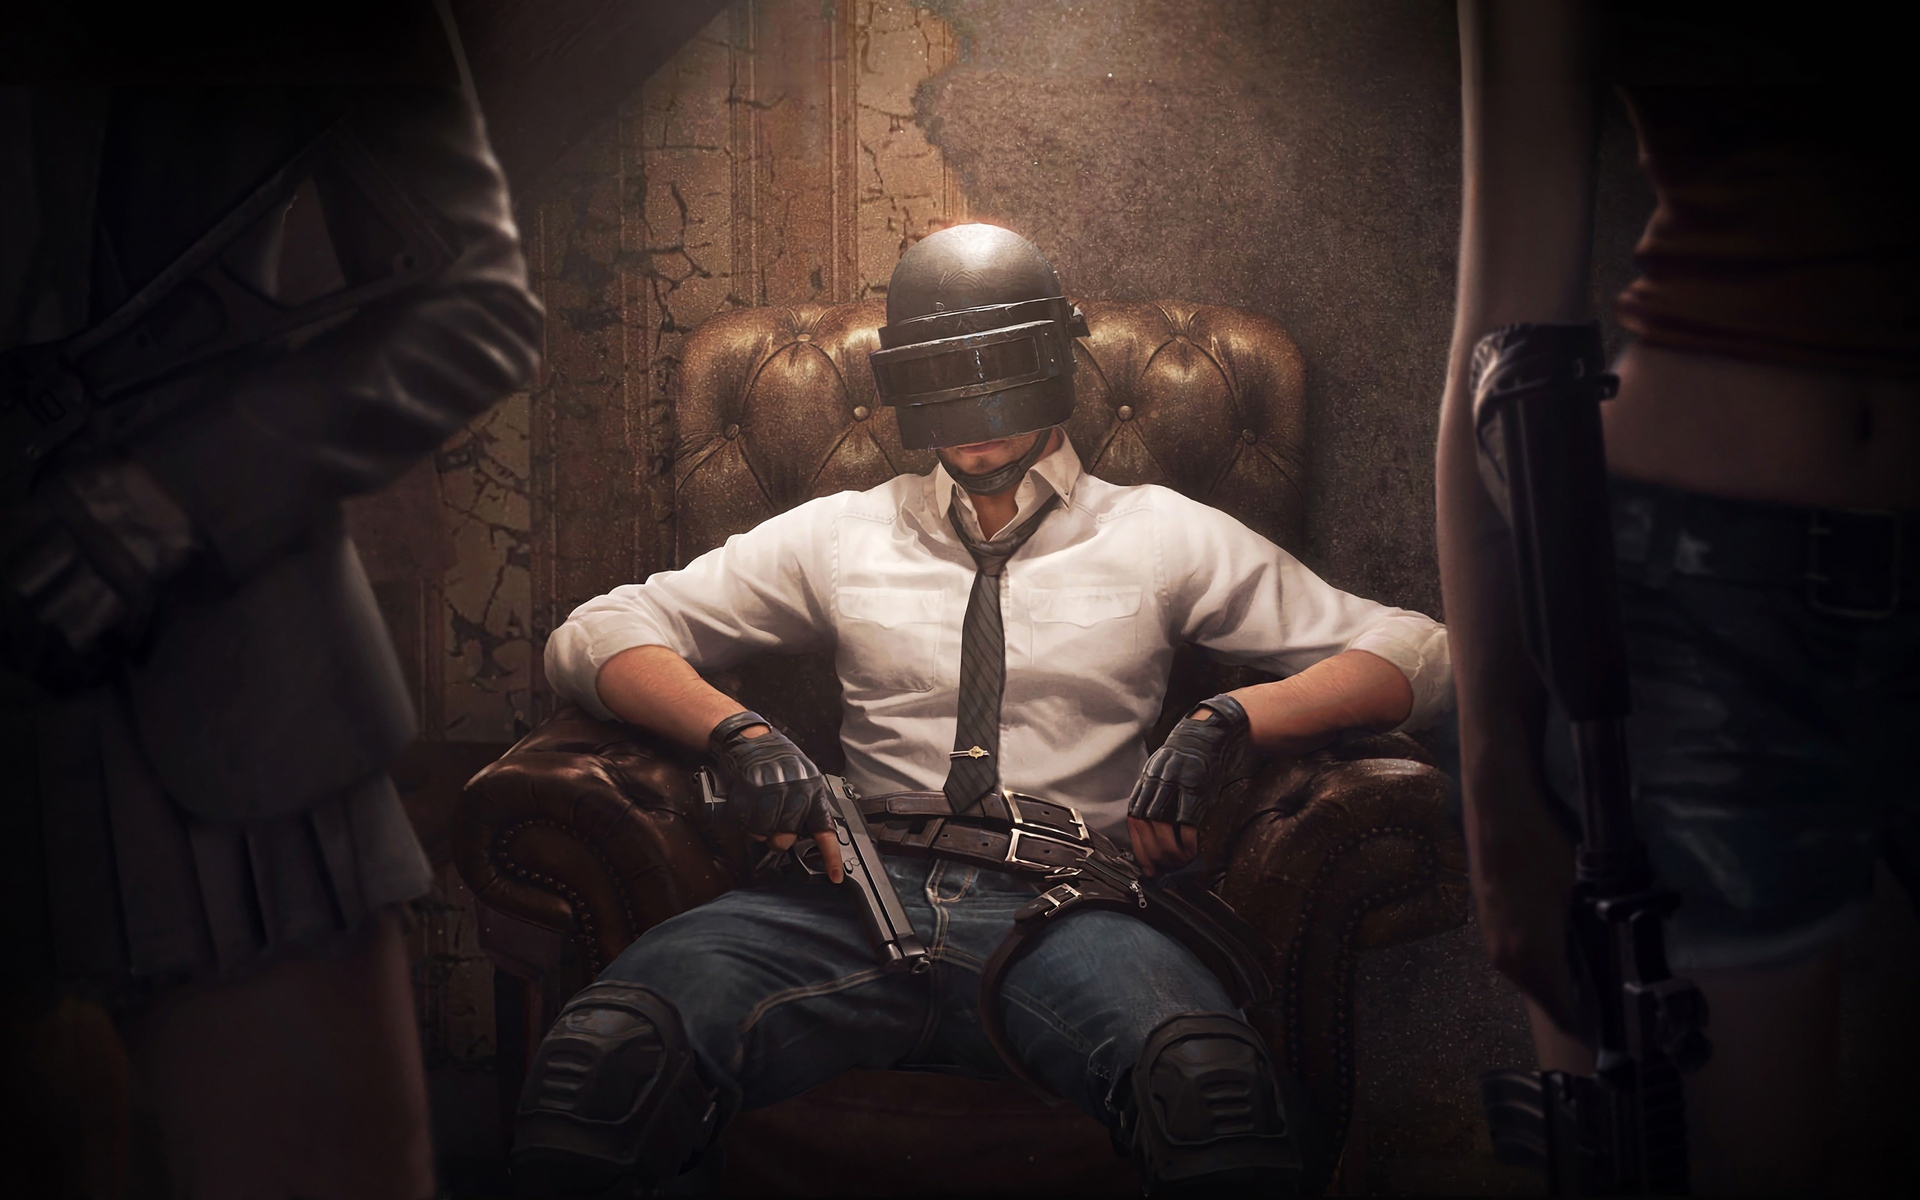 Pubg Hd Wallpaper: 1920x1200 Pubg Android Game 4k 1080P Resolution HD 4k